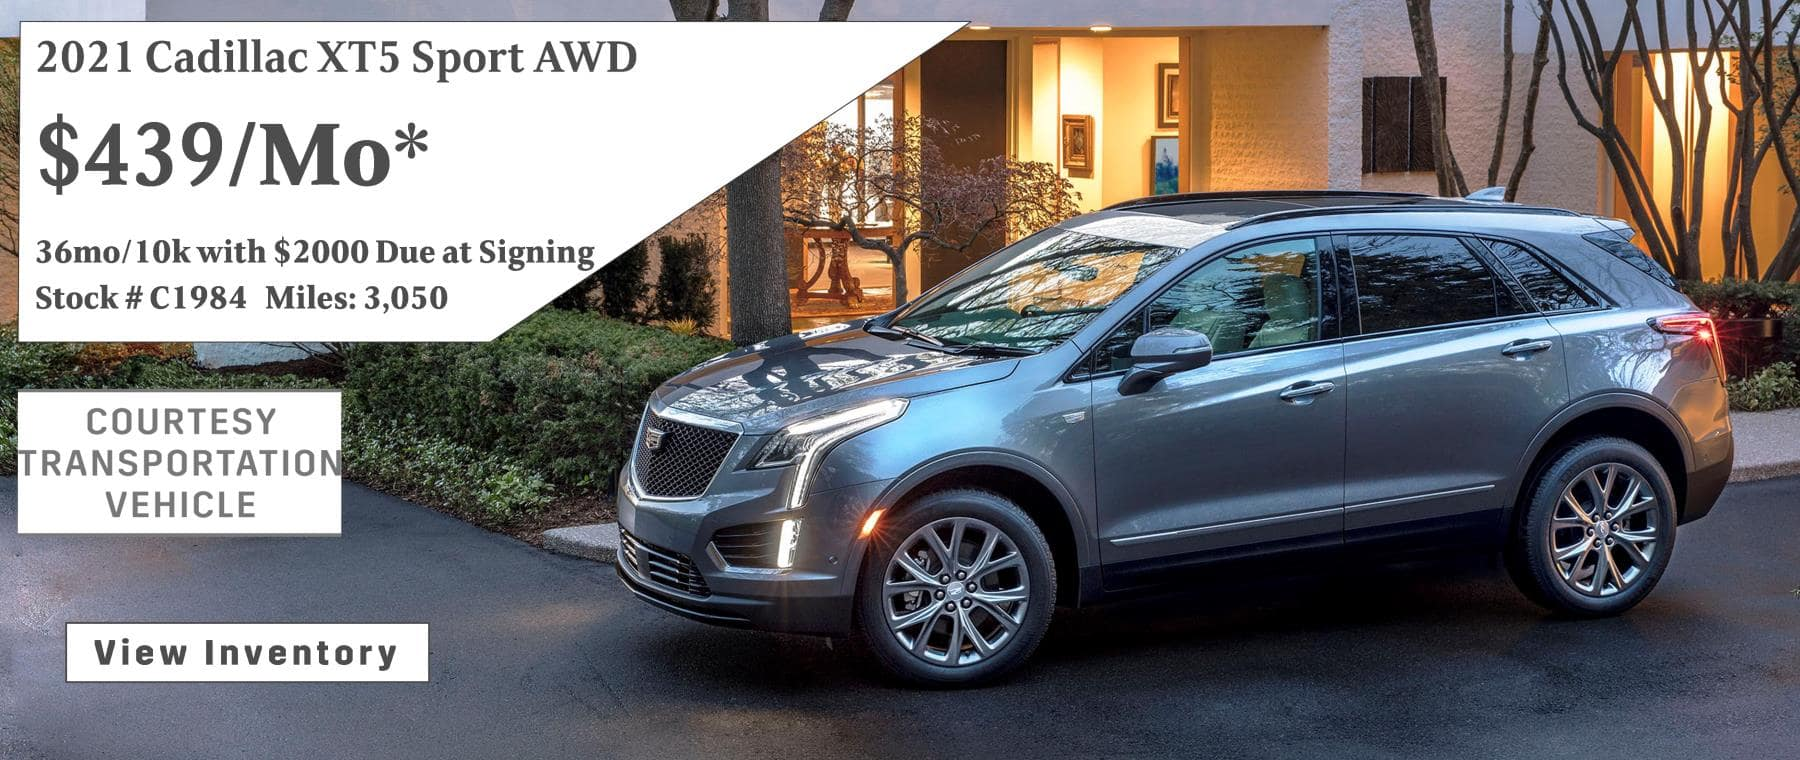 June 2021 XT5 Lease Special $439/mo*